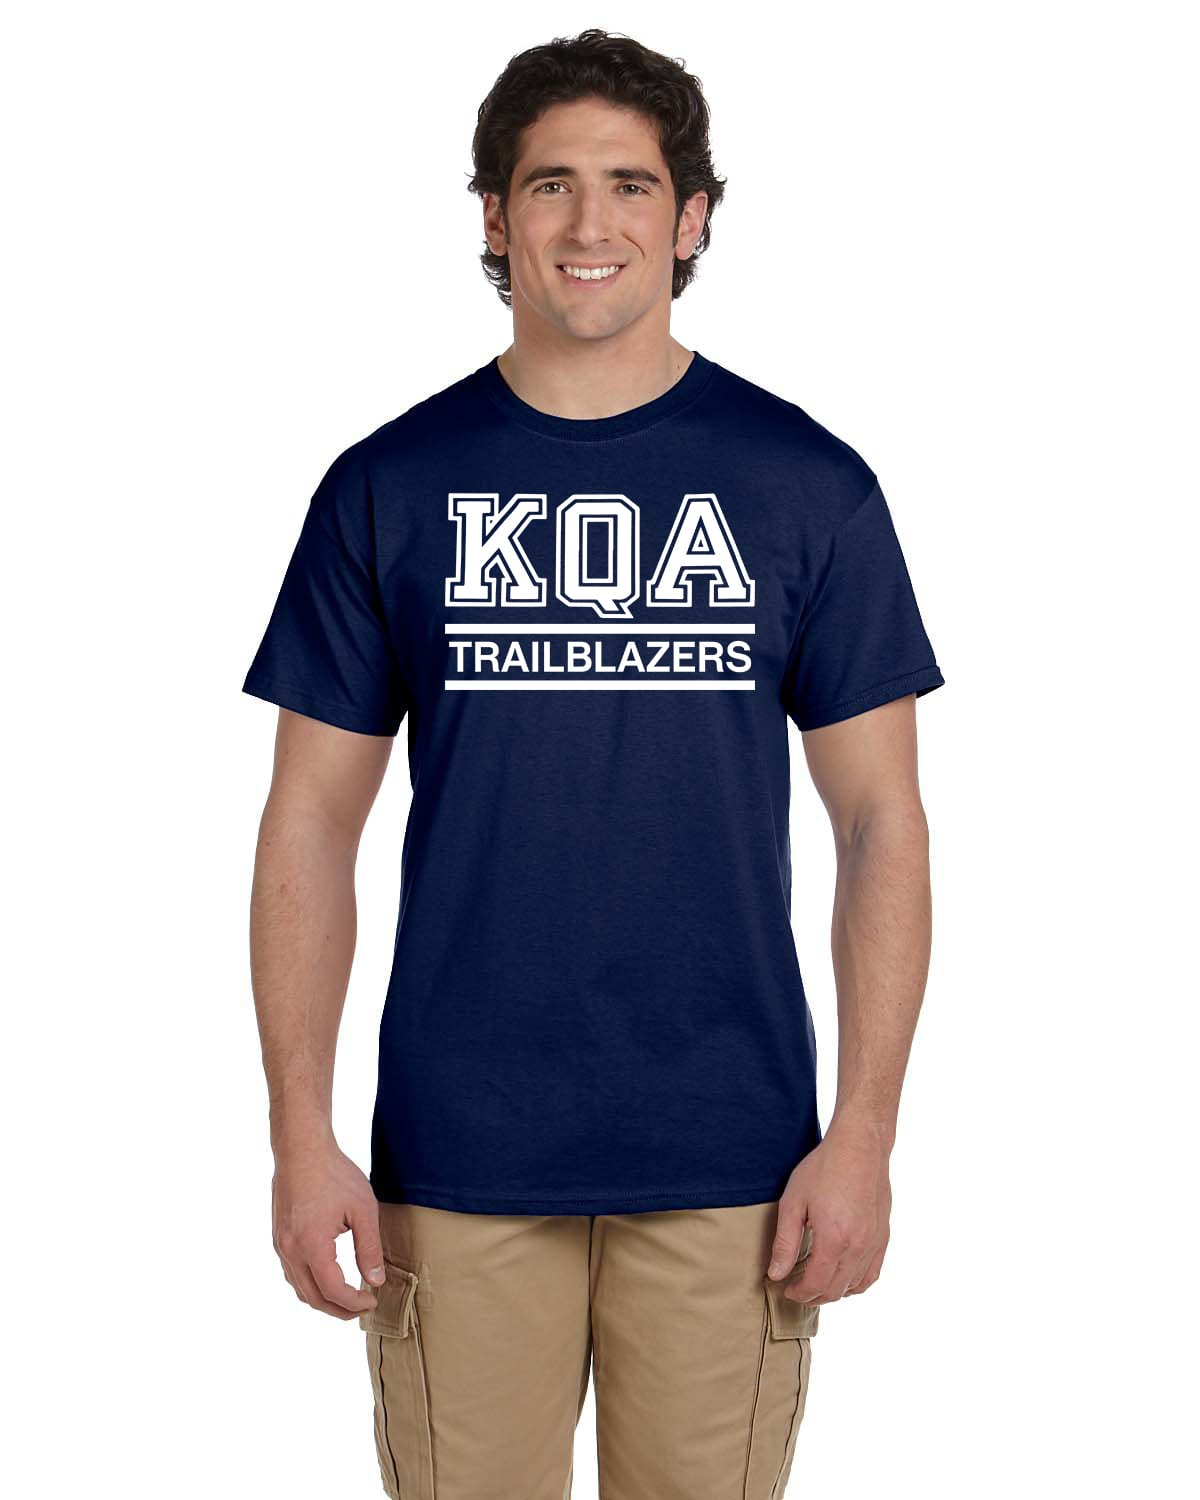 KQA Adult Navy Short Sleeve Cotton T-shirt